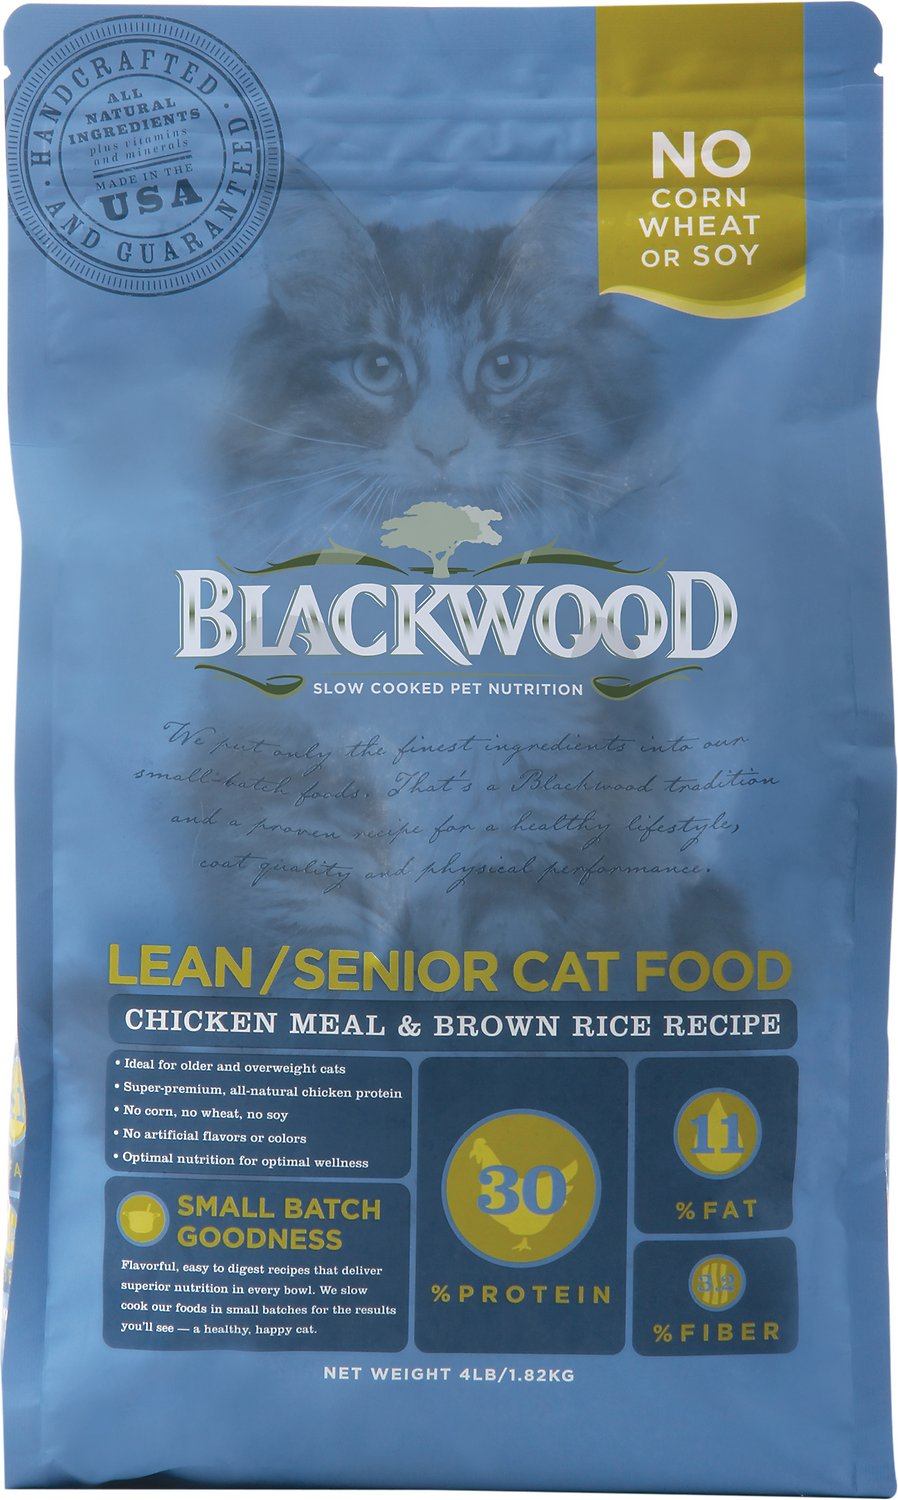 Blackwood chicken meal rice recipe lean dry cat food 1322 lb video forumfinder Choice Image